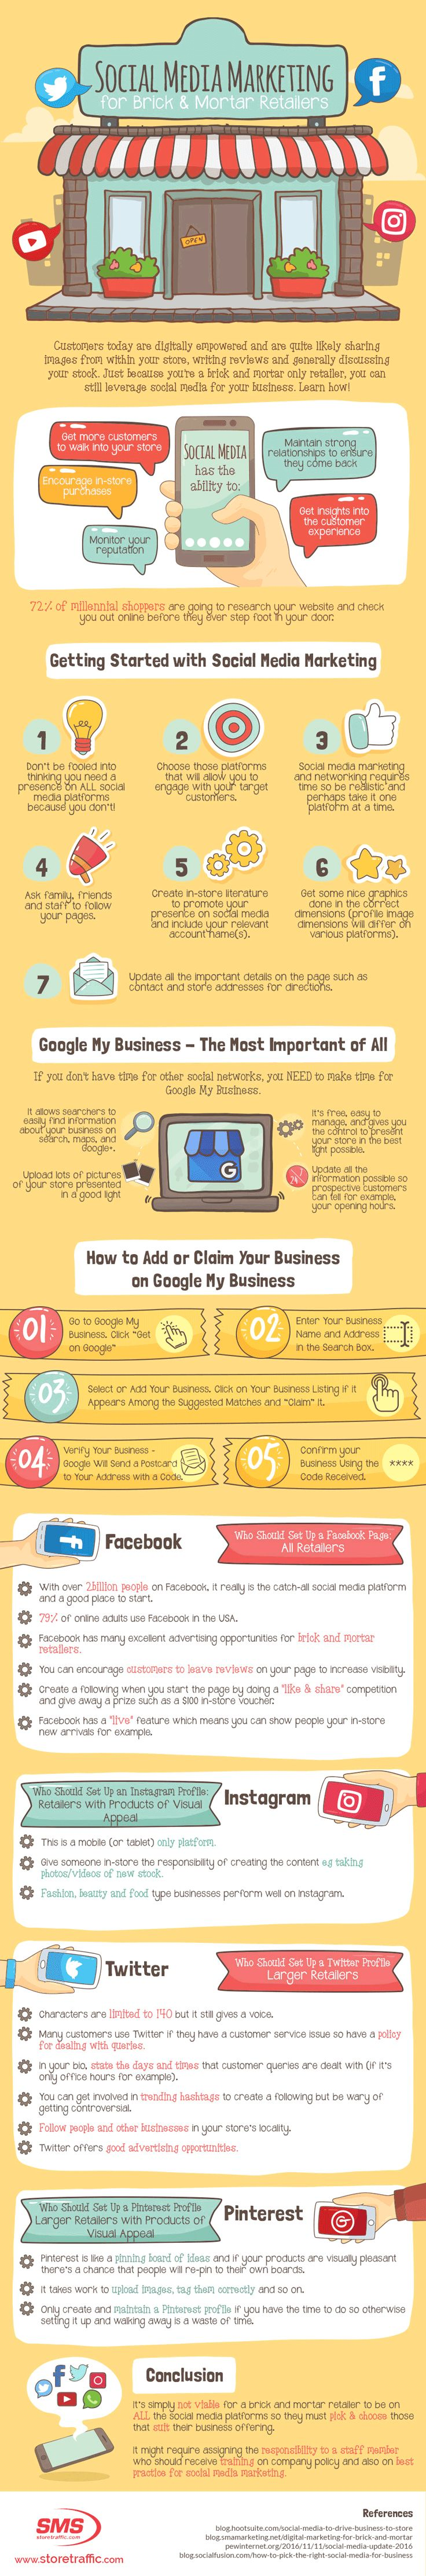 Social media marketing tips for local retail: If you have a brick-and-mortar store, check this infographic to optimize your social media presence. #marketingtips #socialmediamarketing